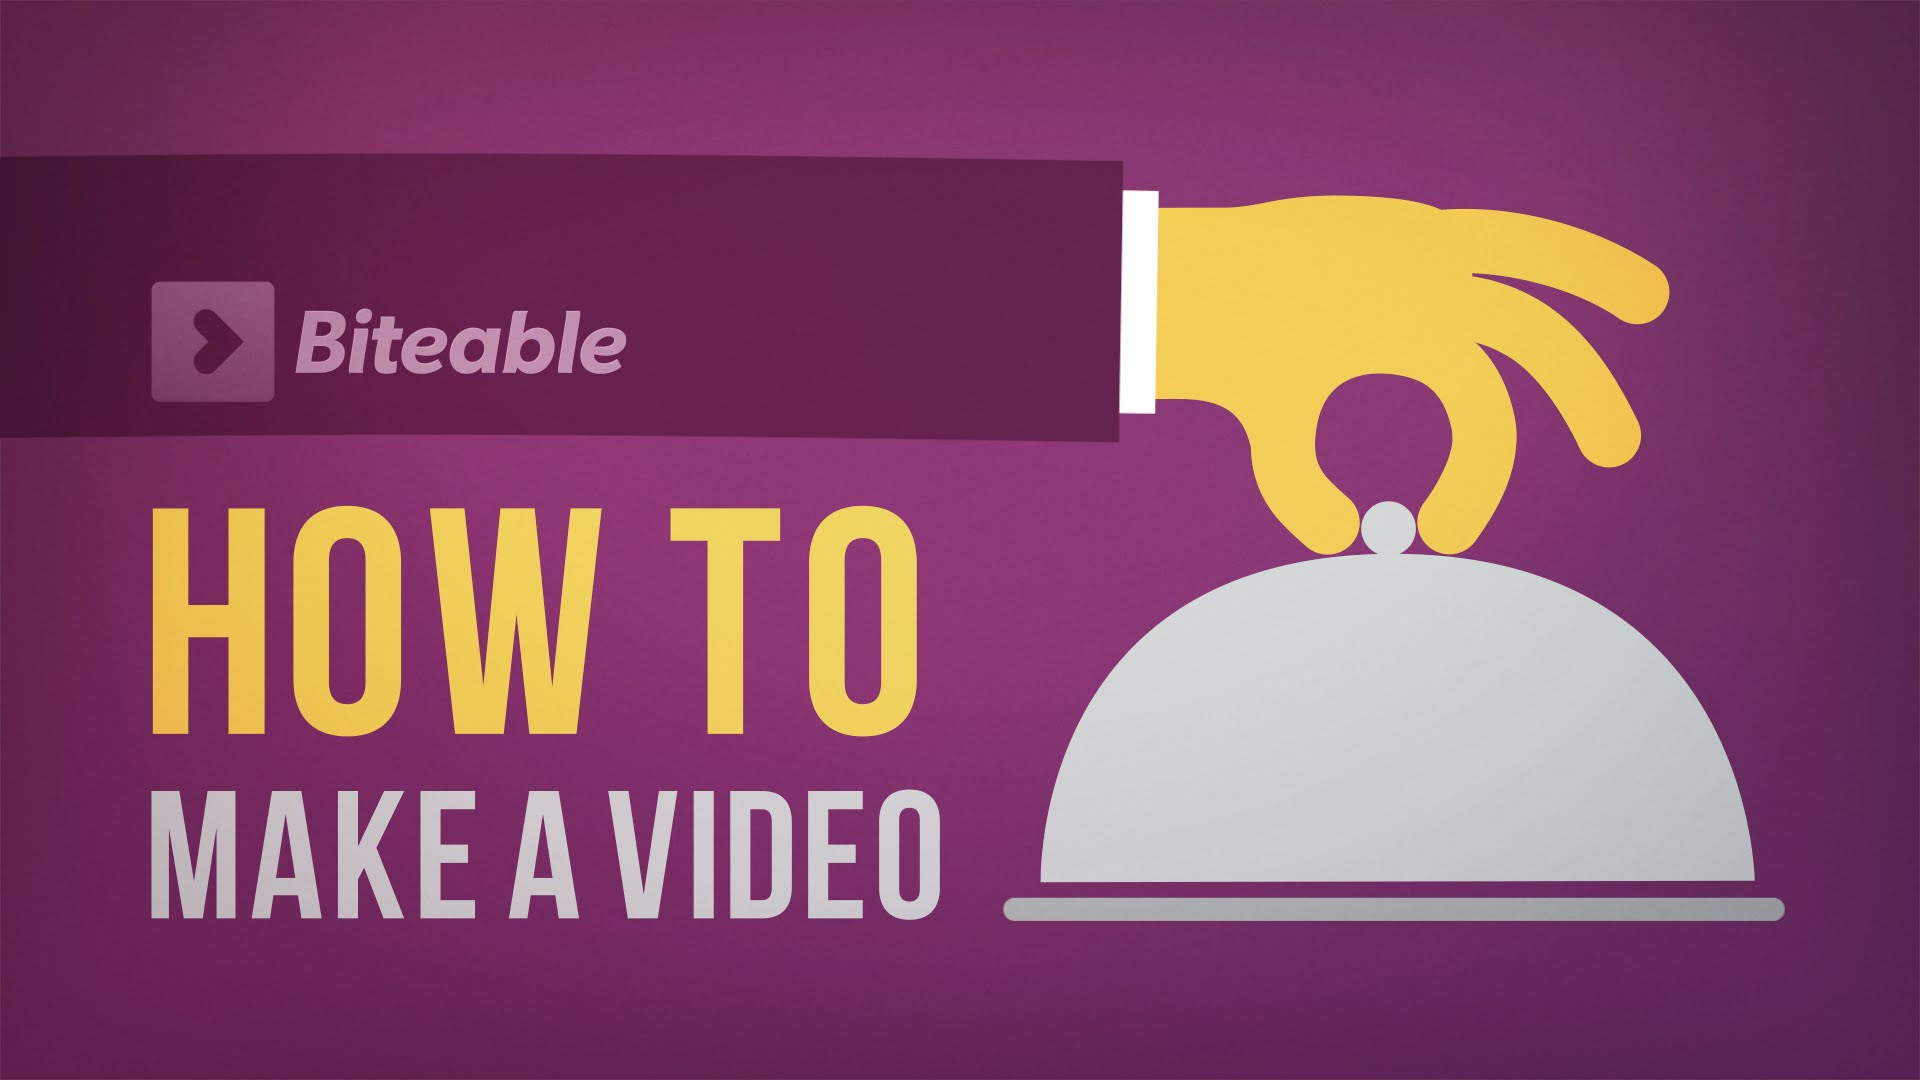 Biteable how to make a video